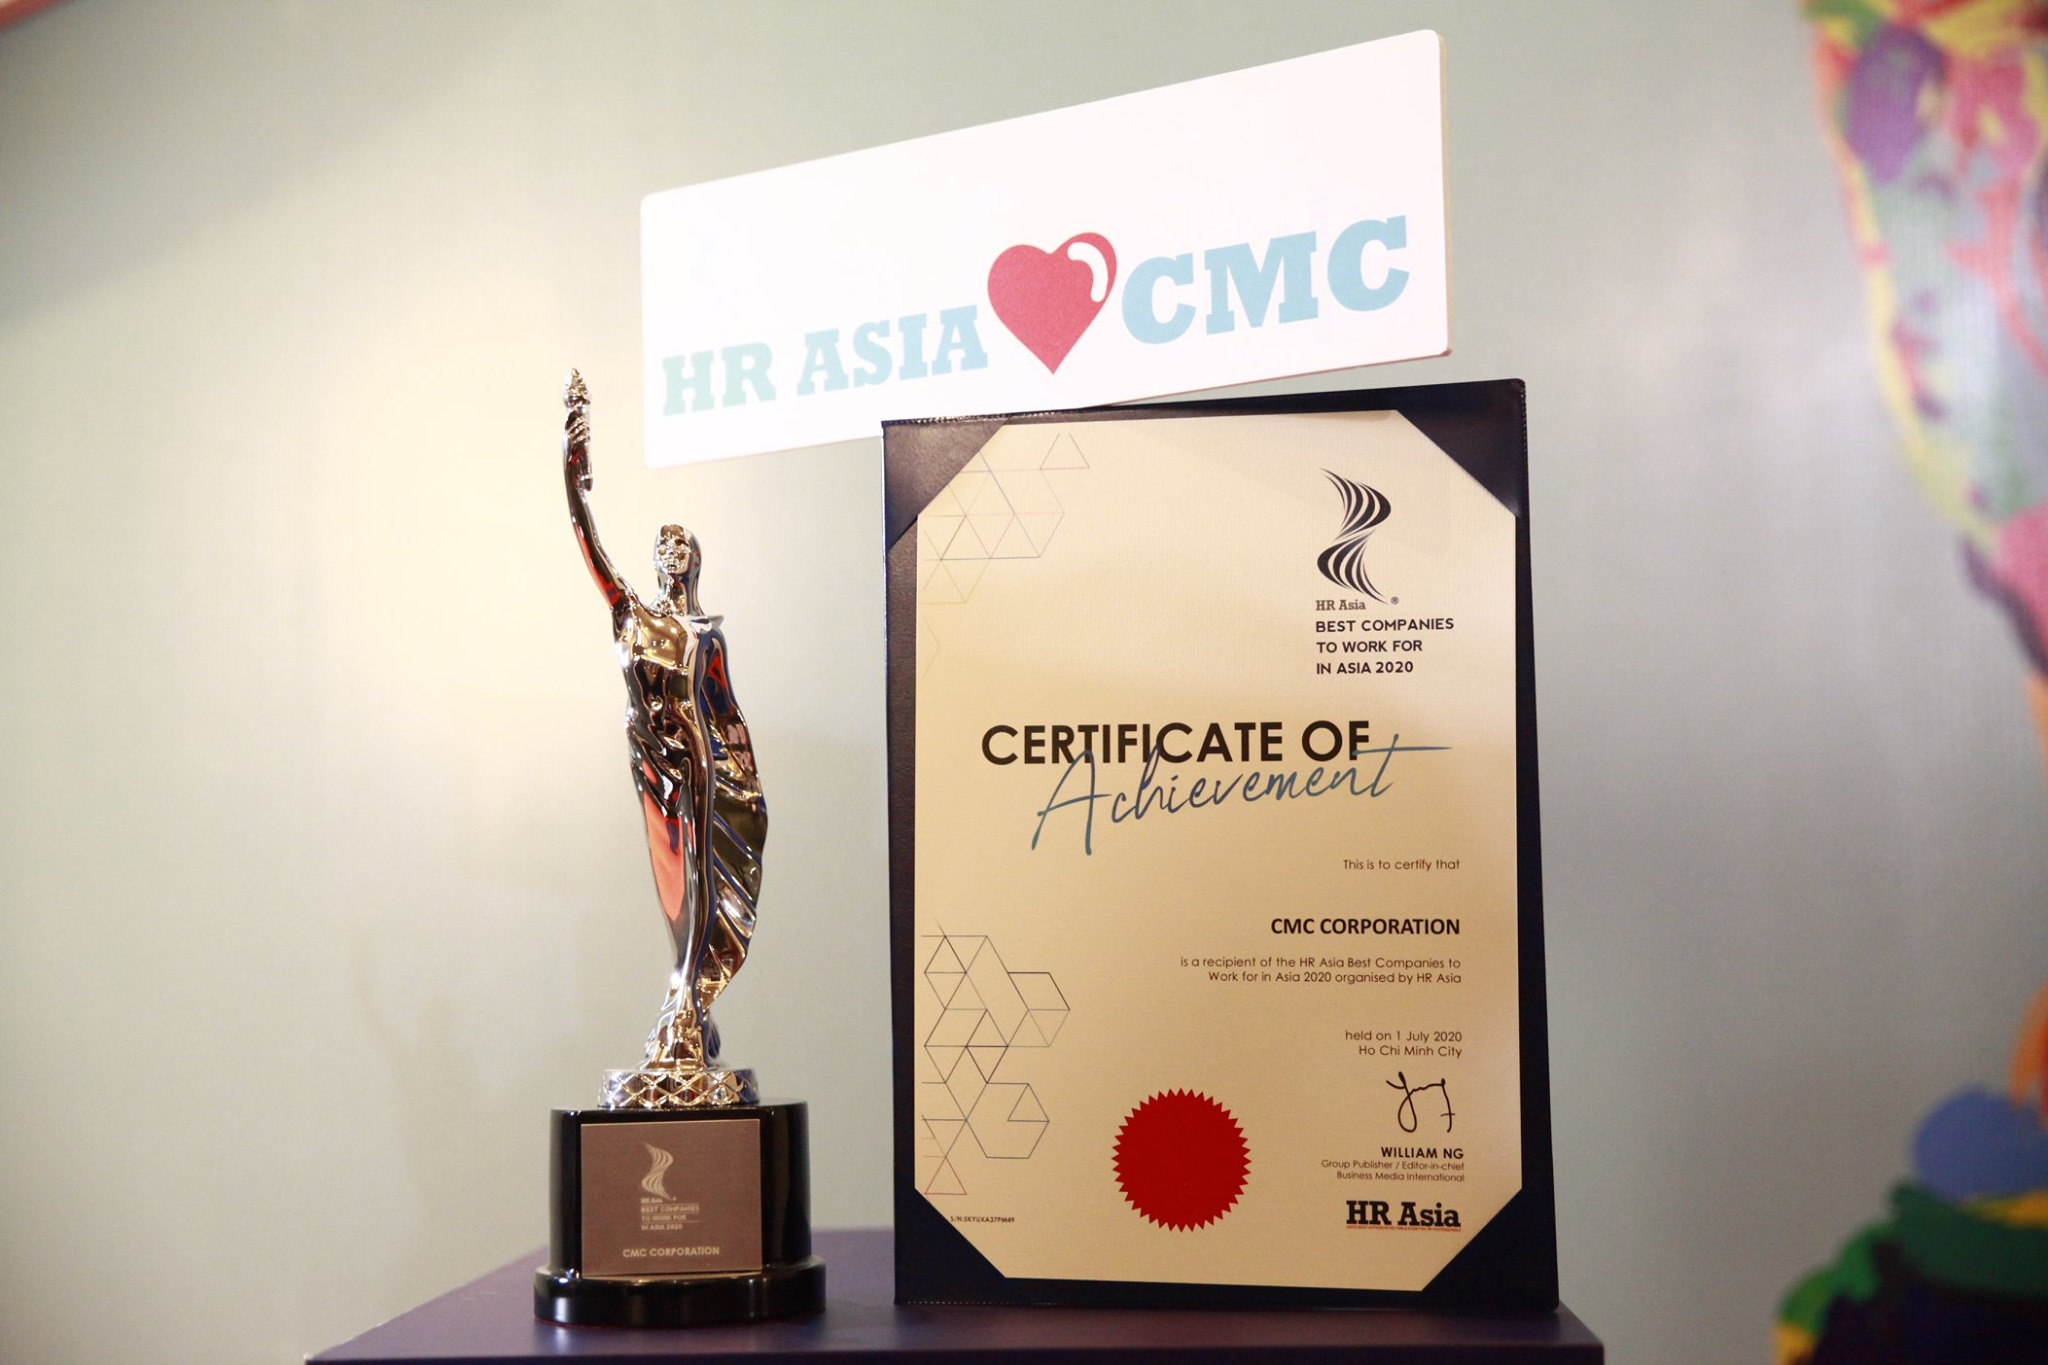 CMC is honored as one of the Best Companies to work for in Asia 2020